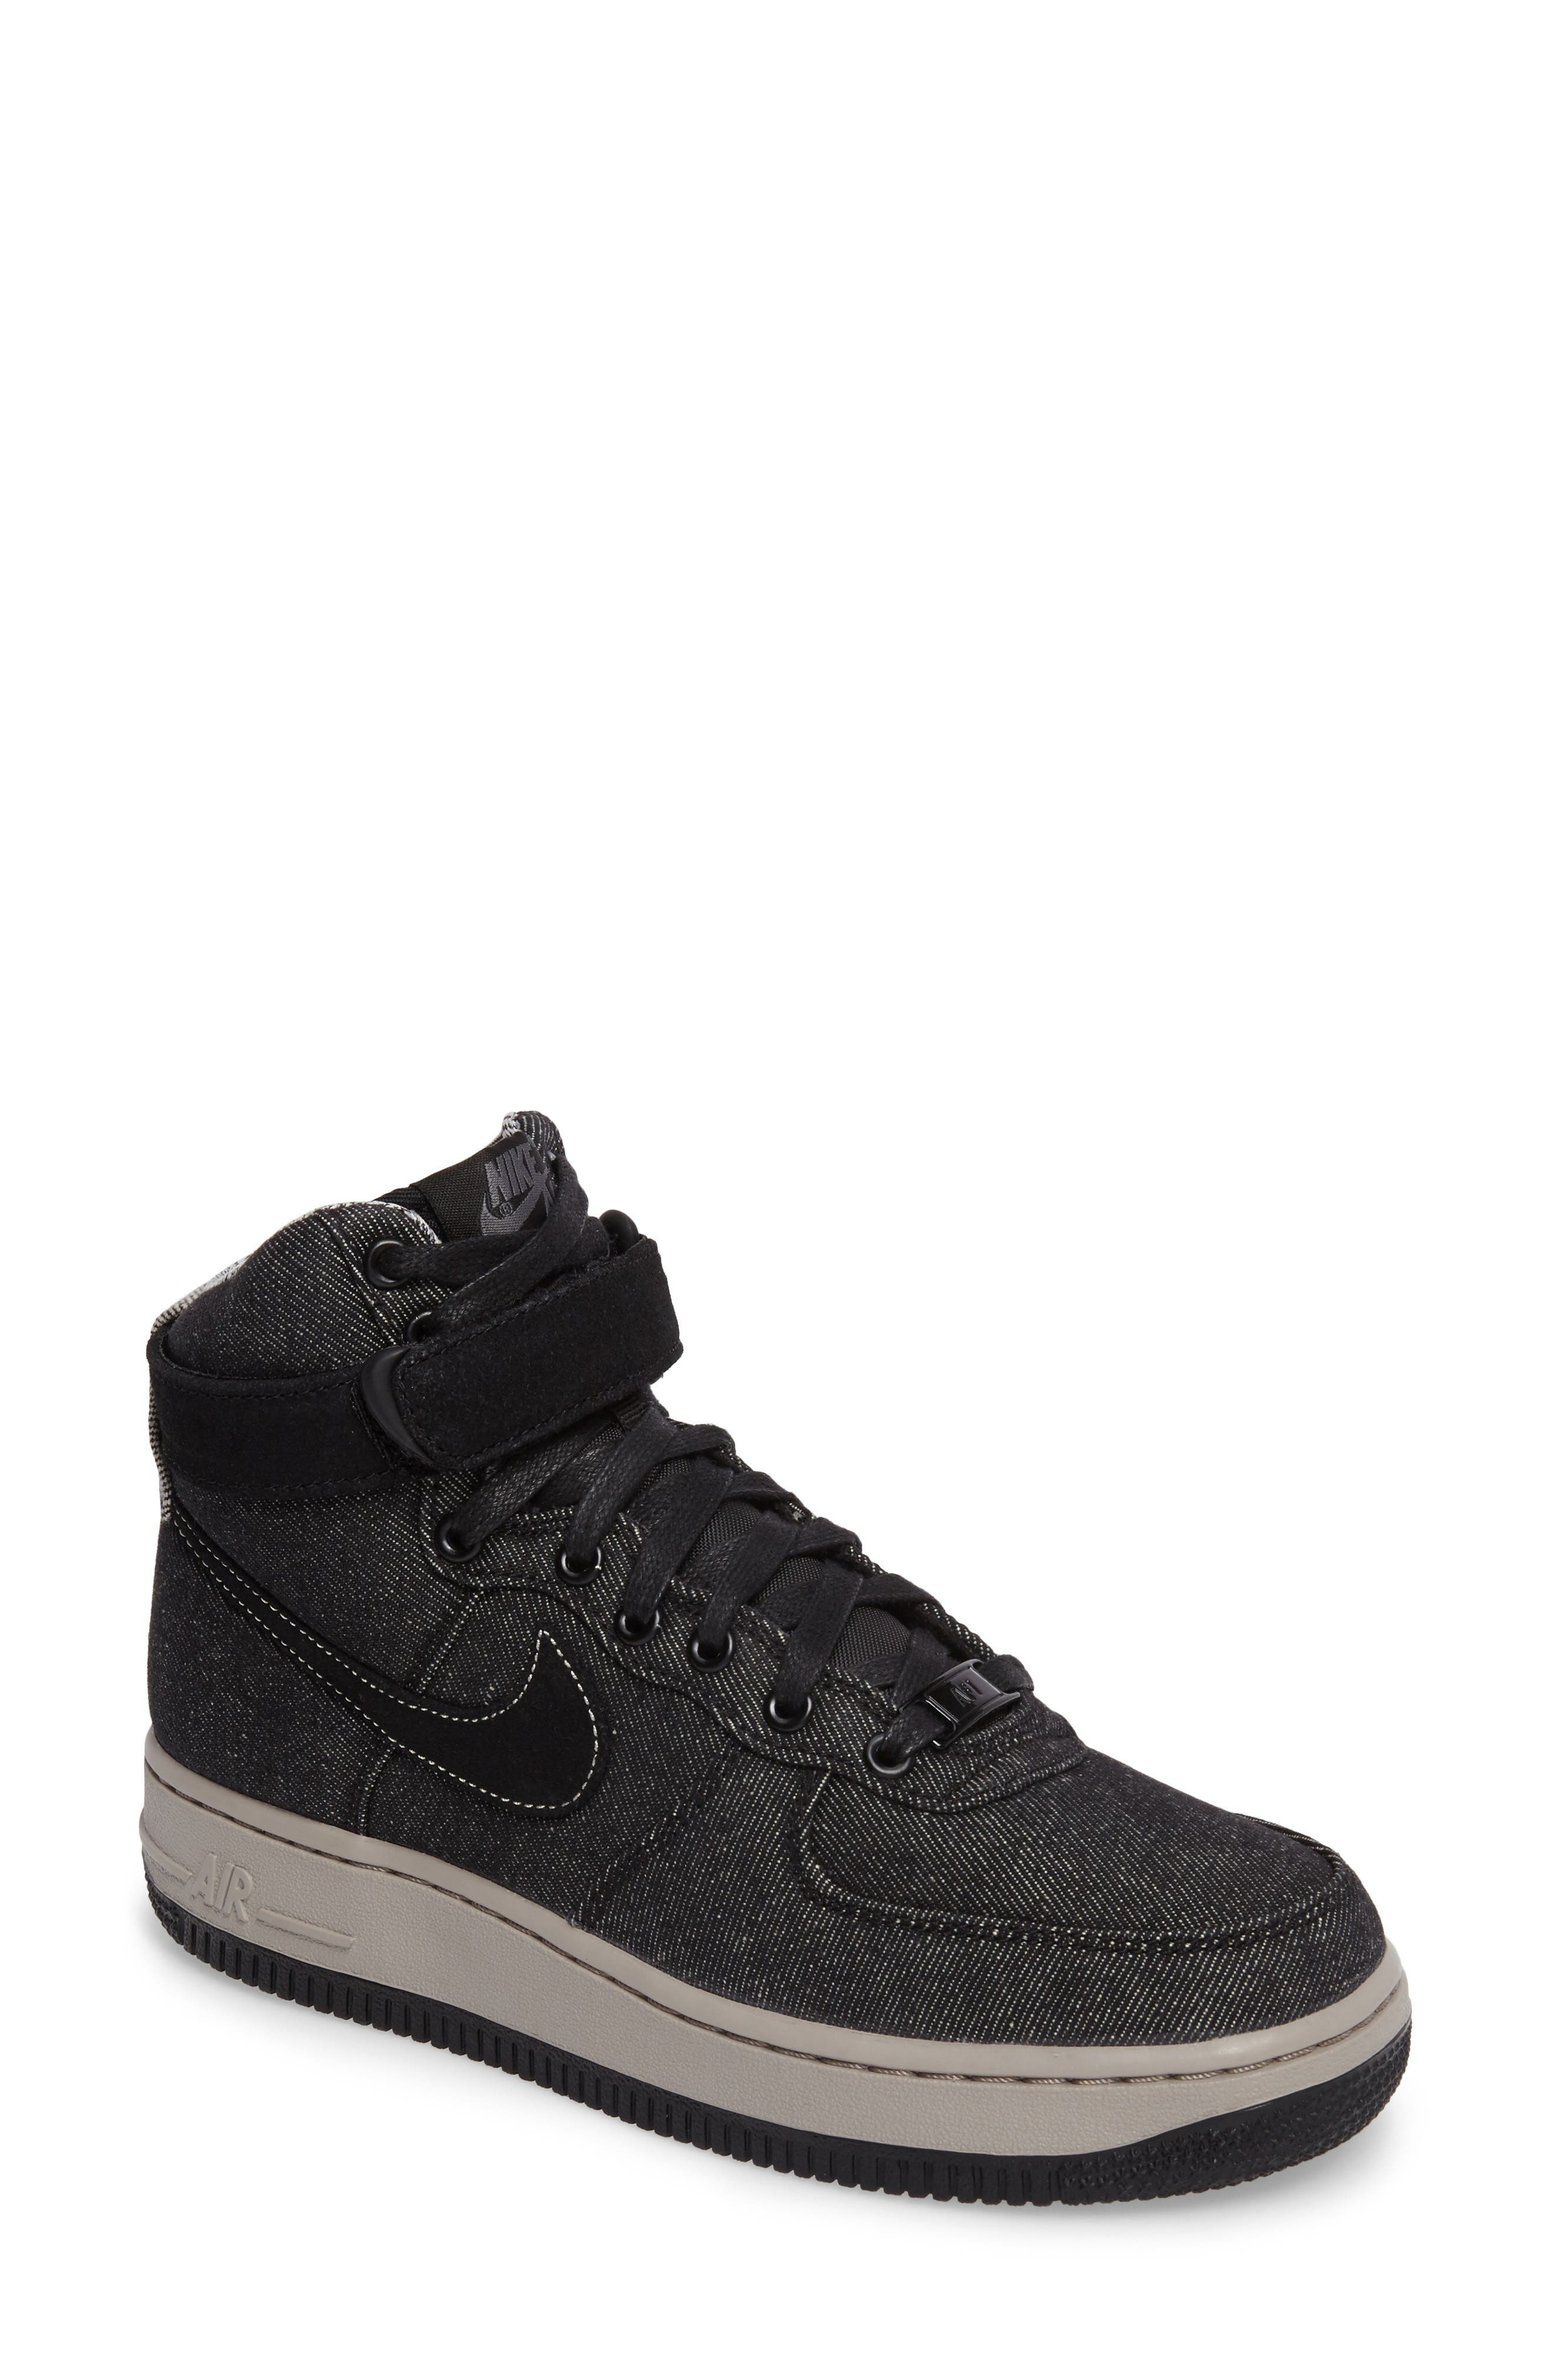 AIR FORCE 1 HIGH TOP SE SNEAKER